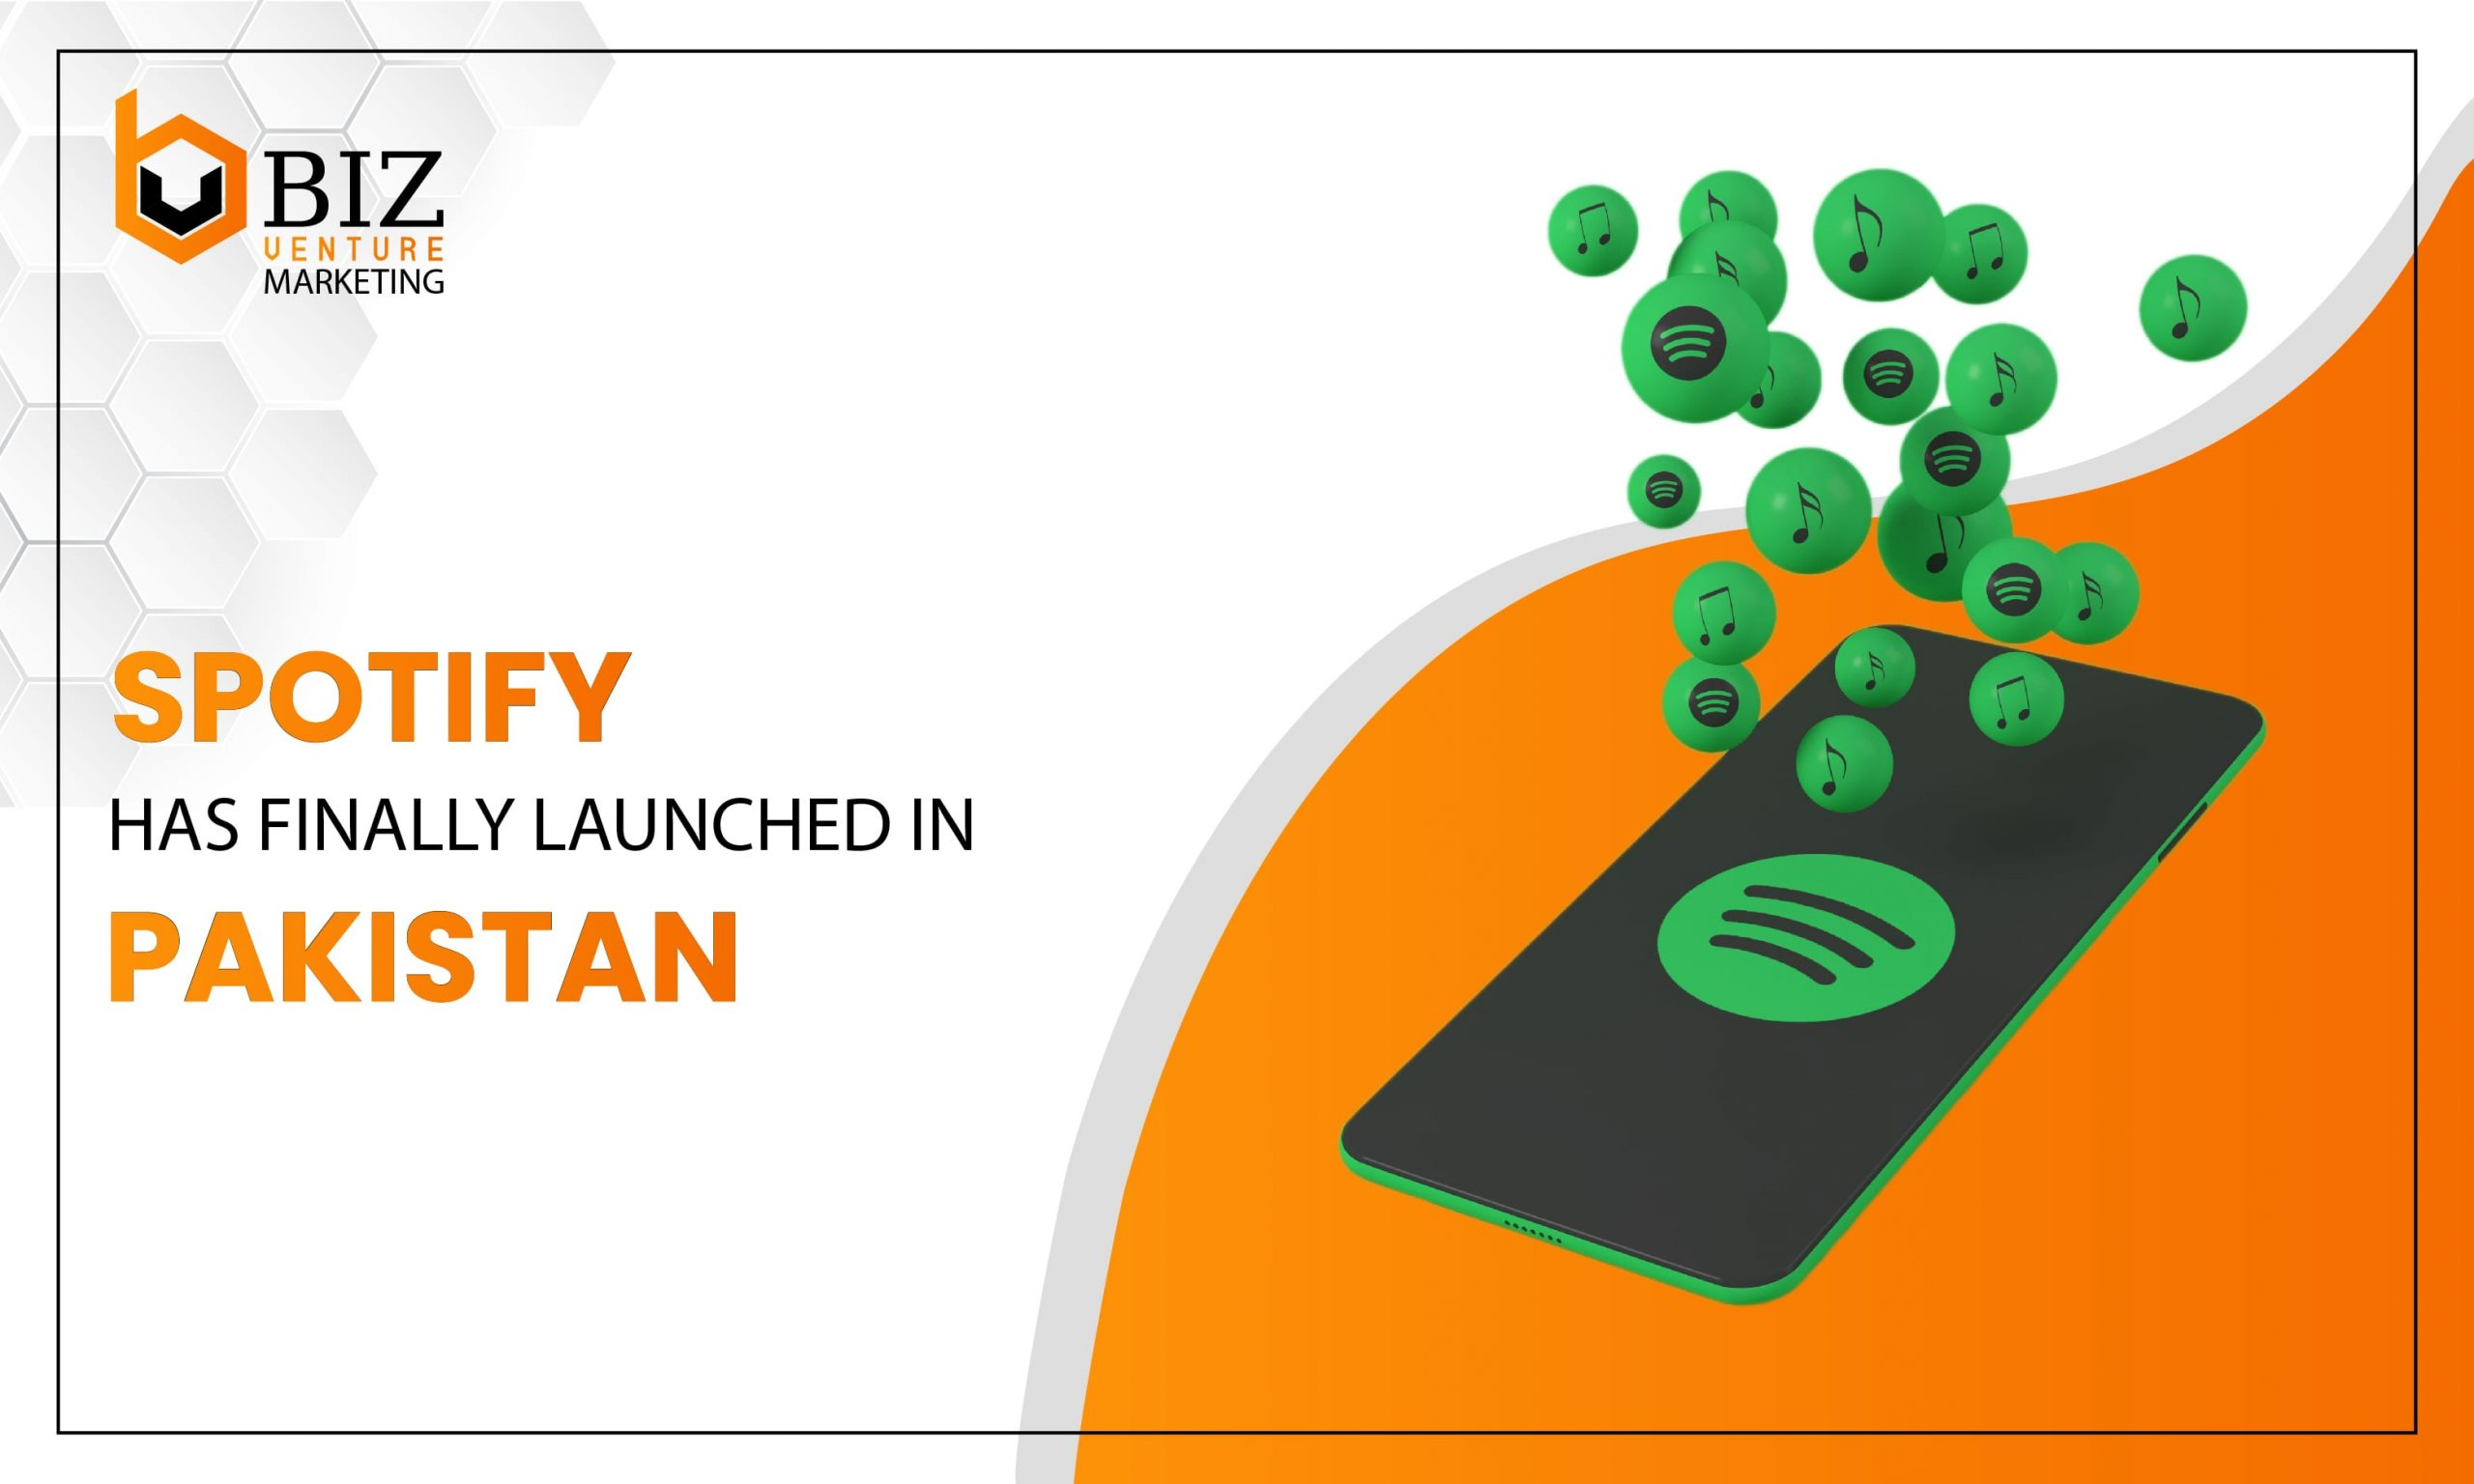 Spotify launched in Pakistan